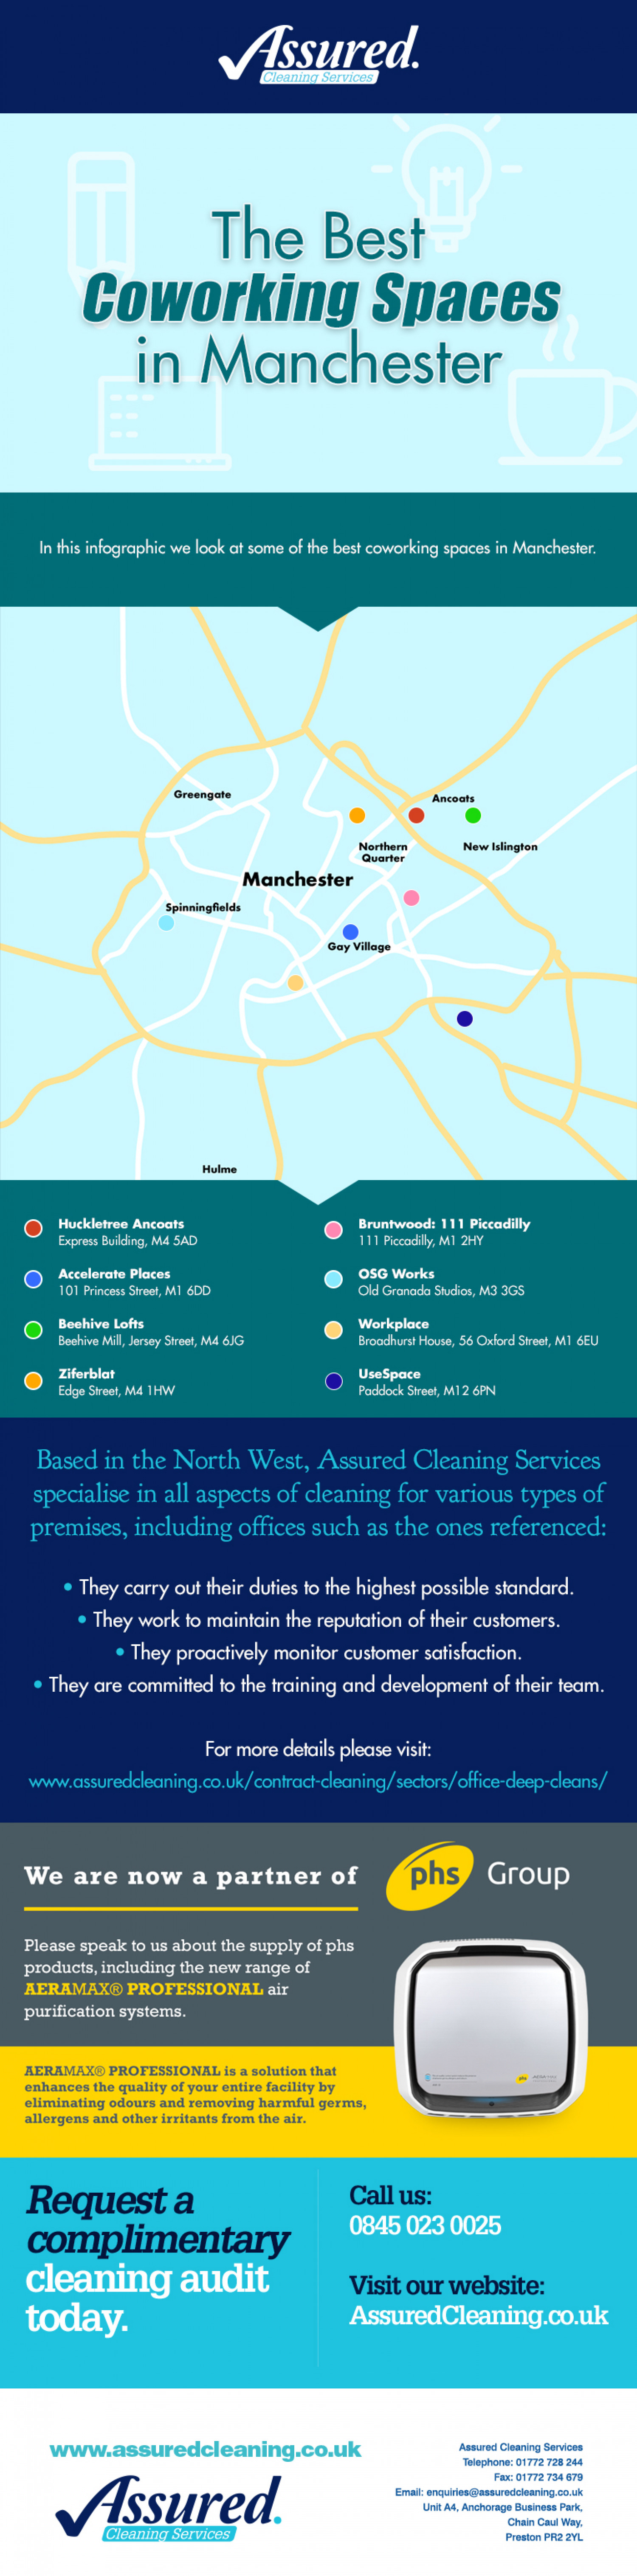 The Best Coworking Spaces in Manchester Infographic